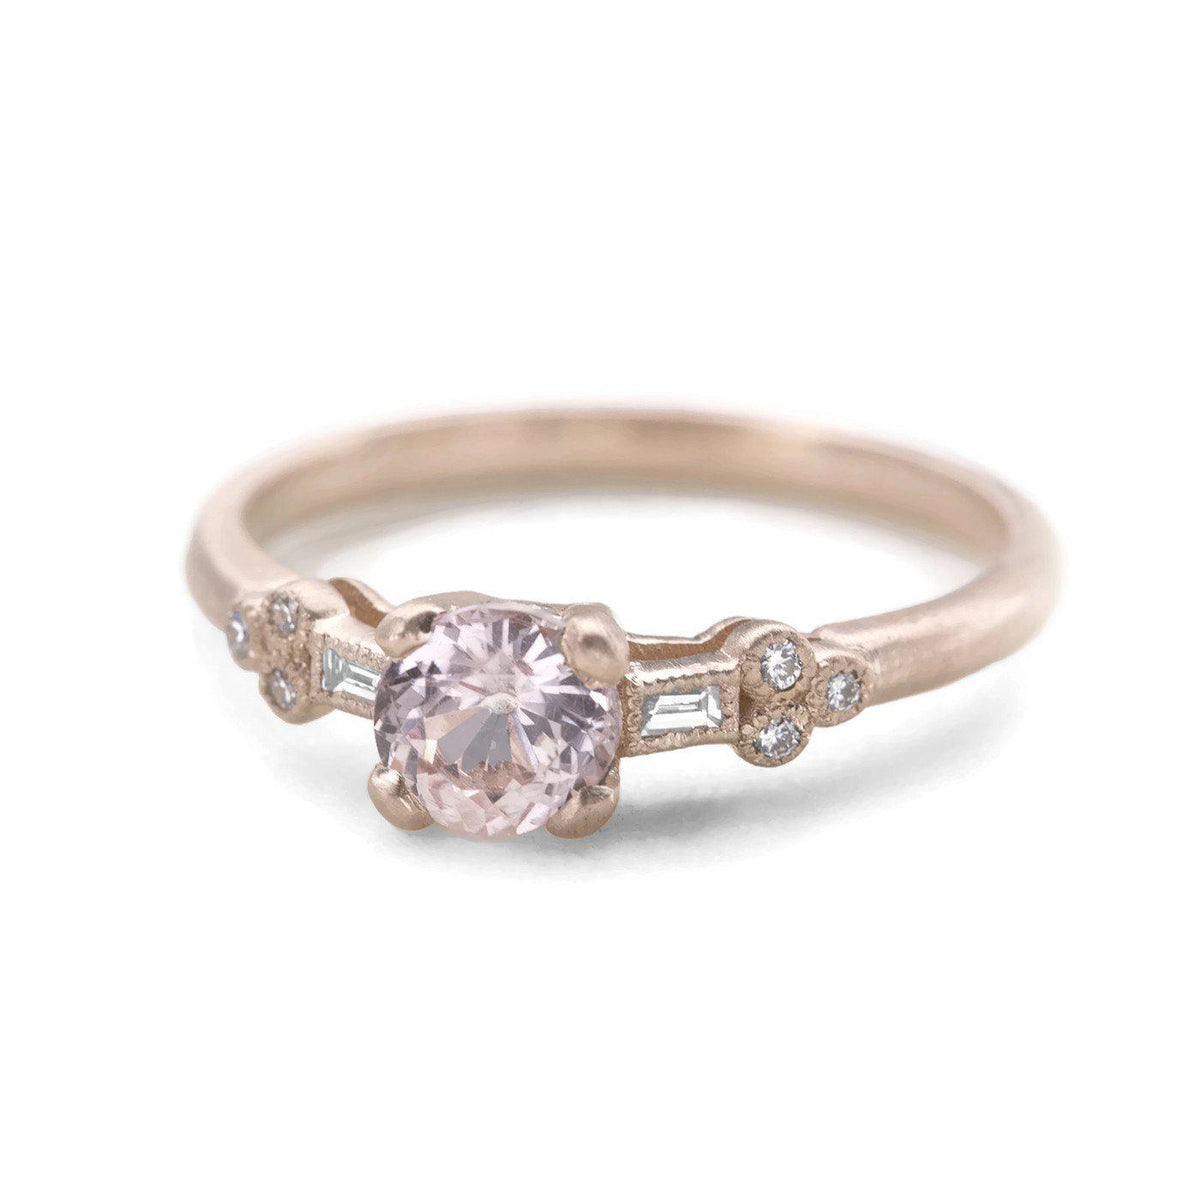 Norah Mae Dainty Diamond Ring